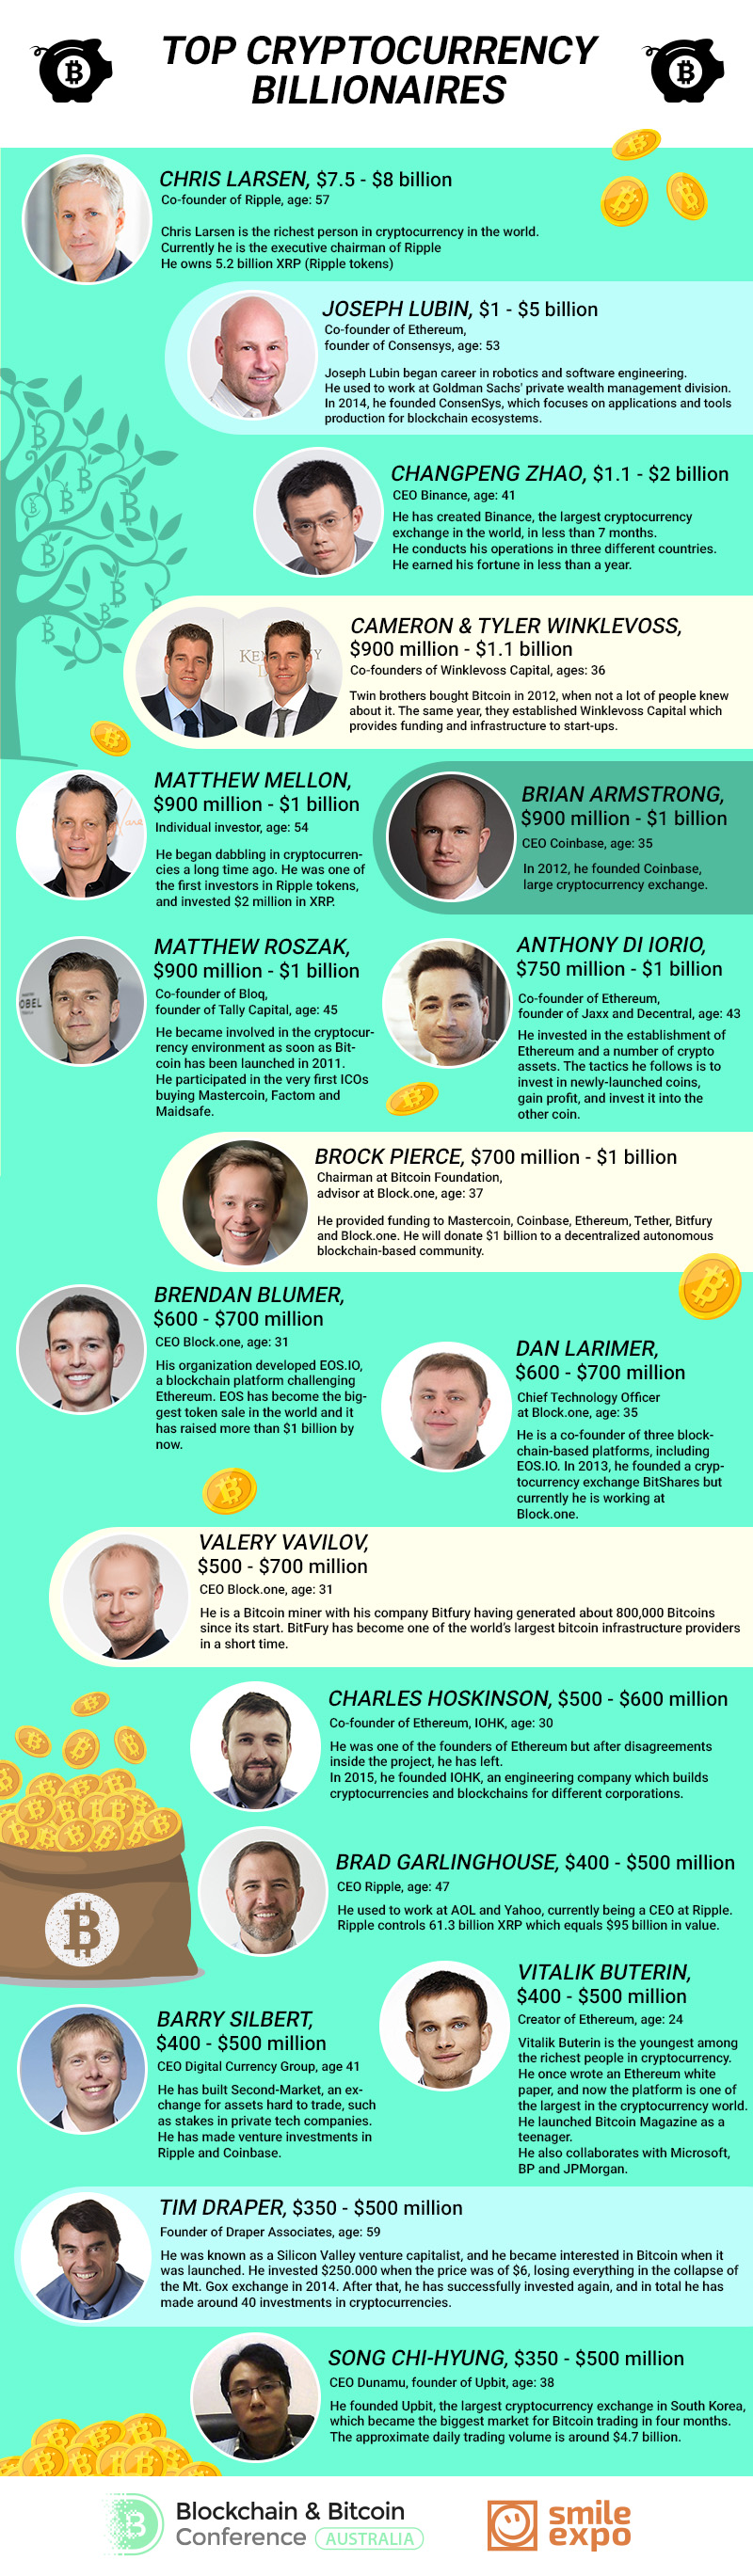 BBC Australia: Top Cryptocurrency Billionaires (Infographics)